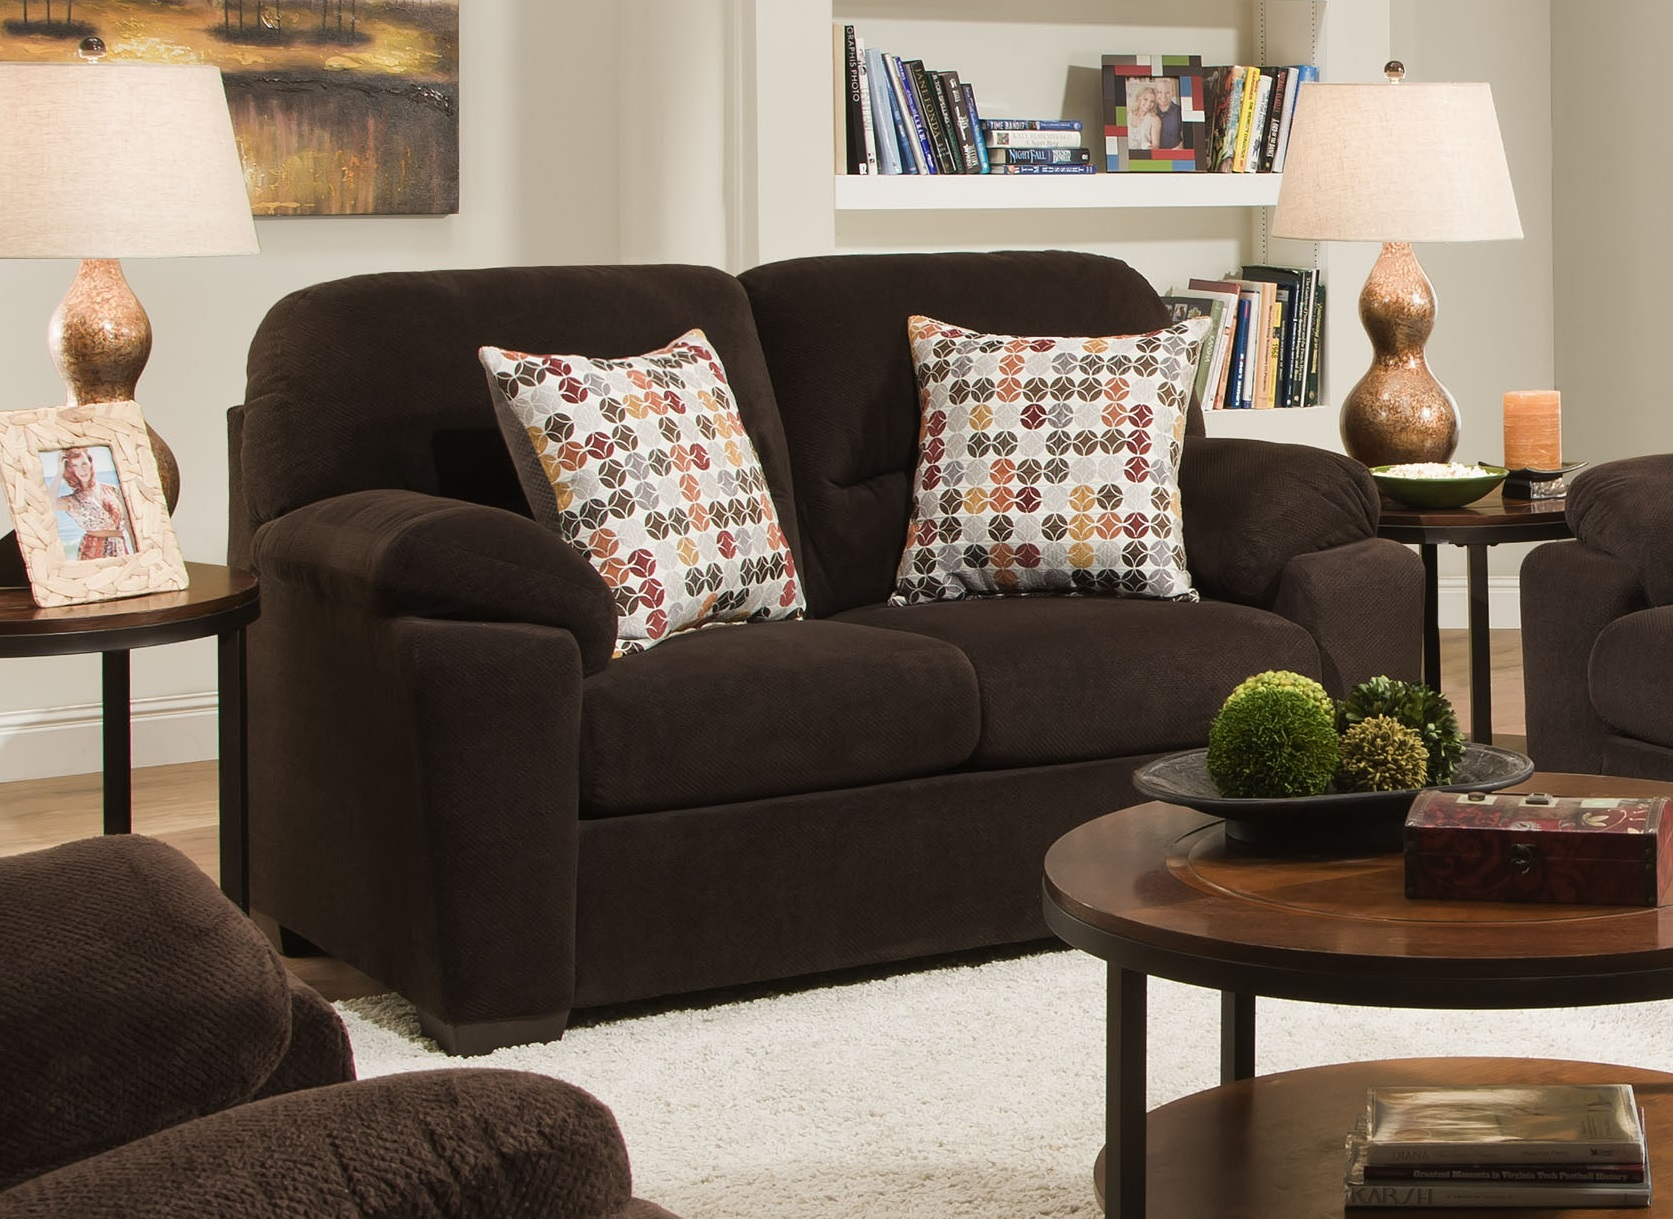 Home Comfort Furniture Coupon Code 28 Images Most Popular Home Furniture Retailers Furniture